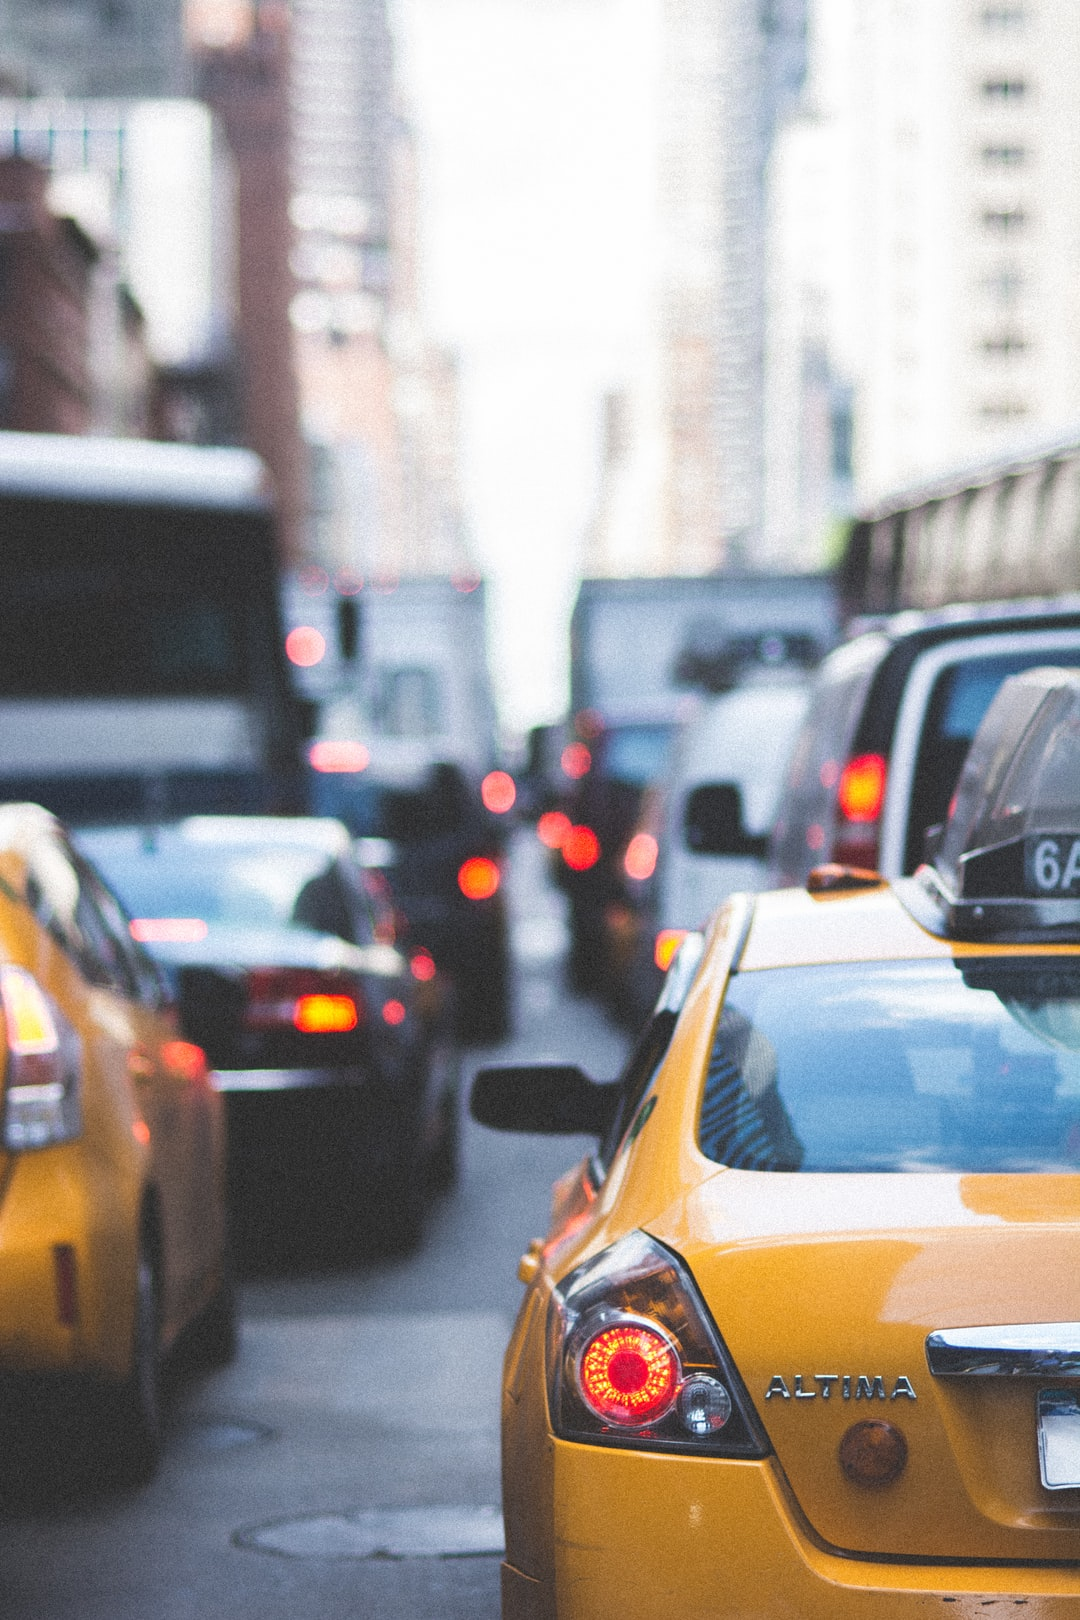 YOUR TRAFFIC IS DIVERTING, AND HERE'S WHY